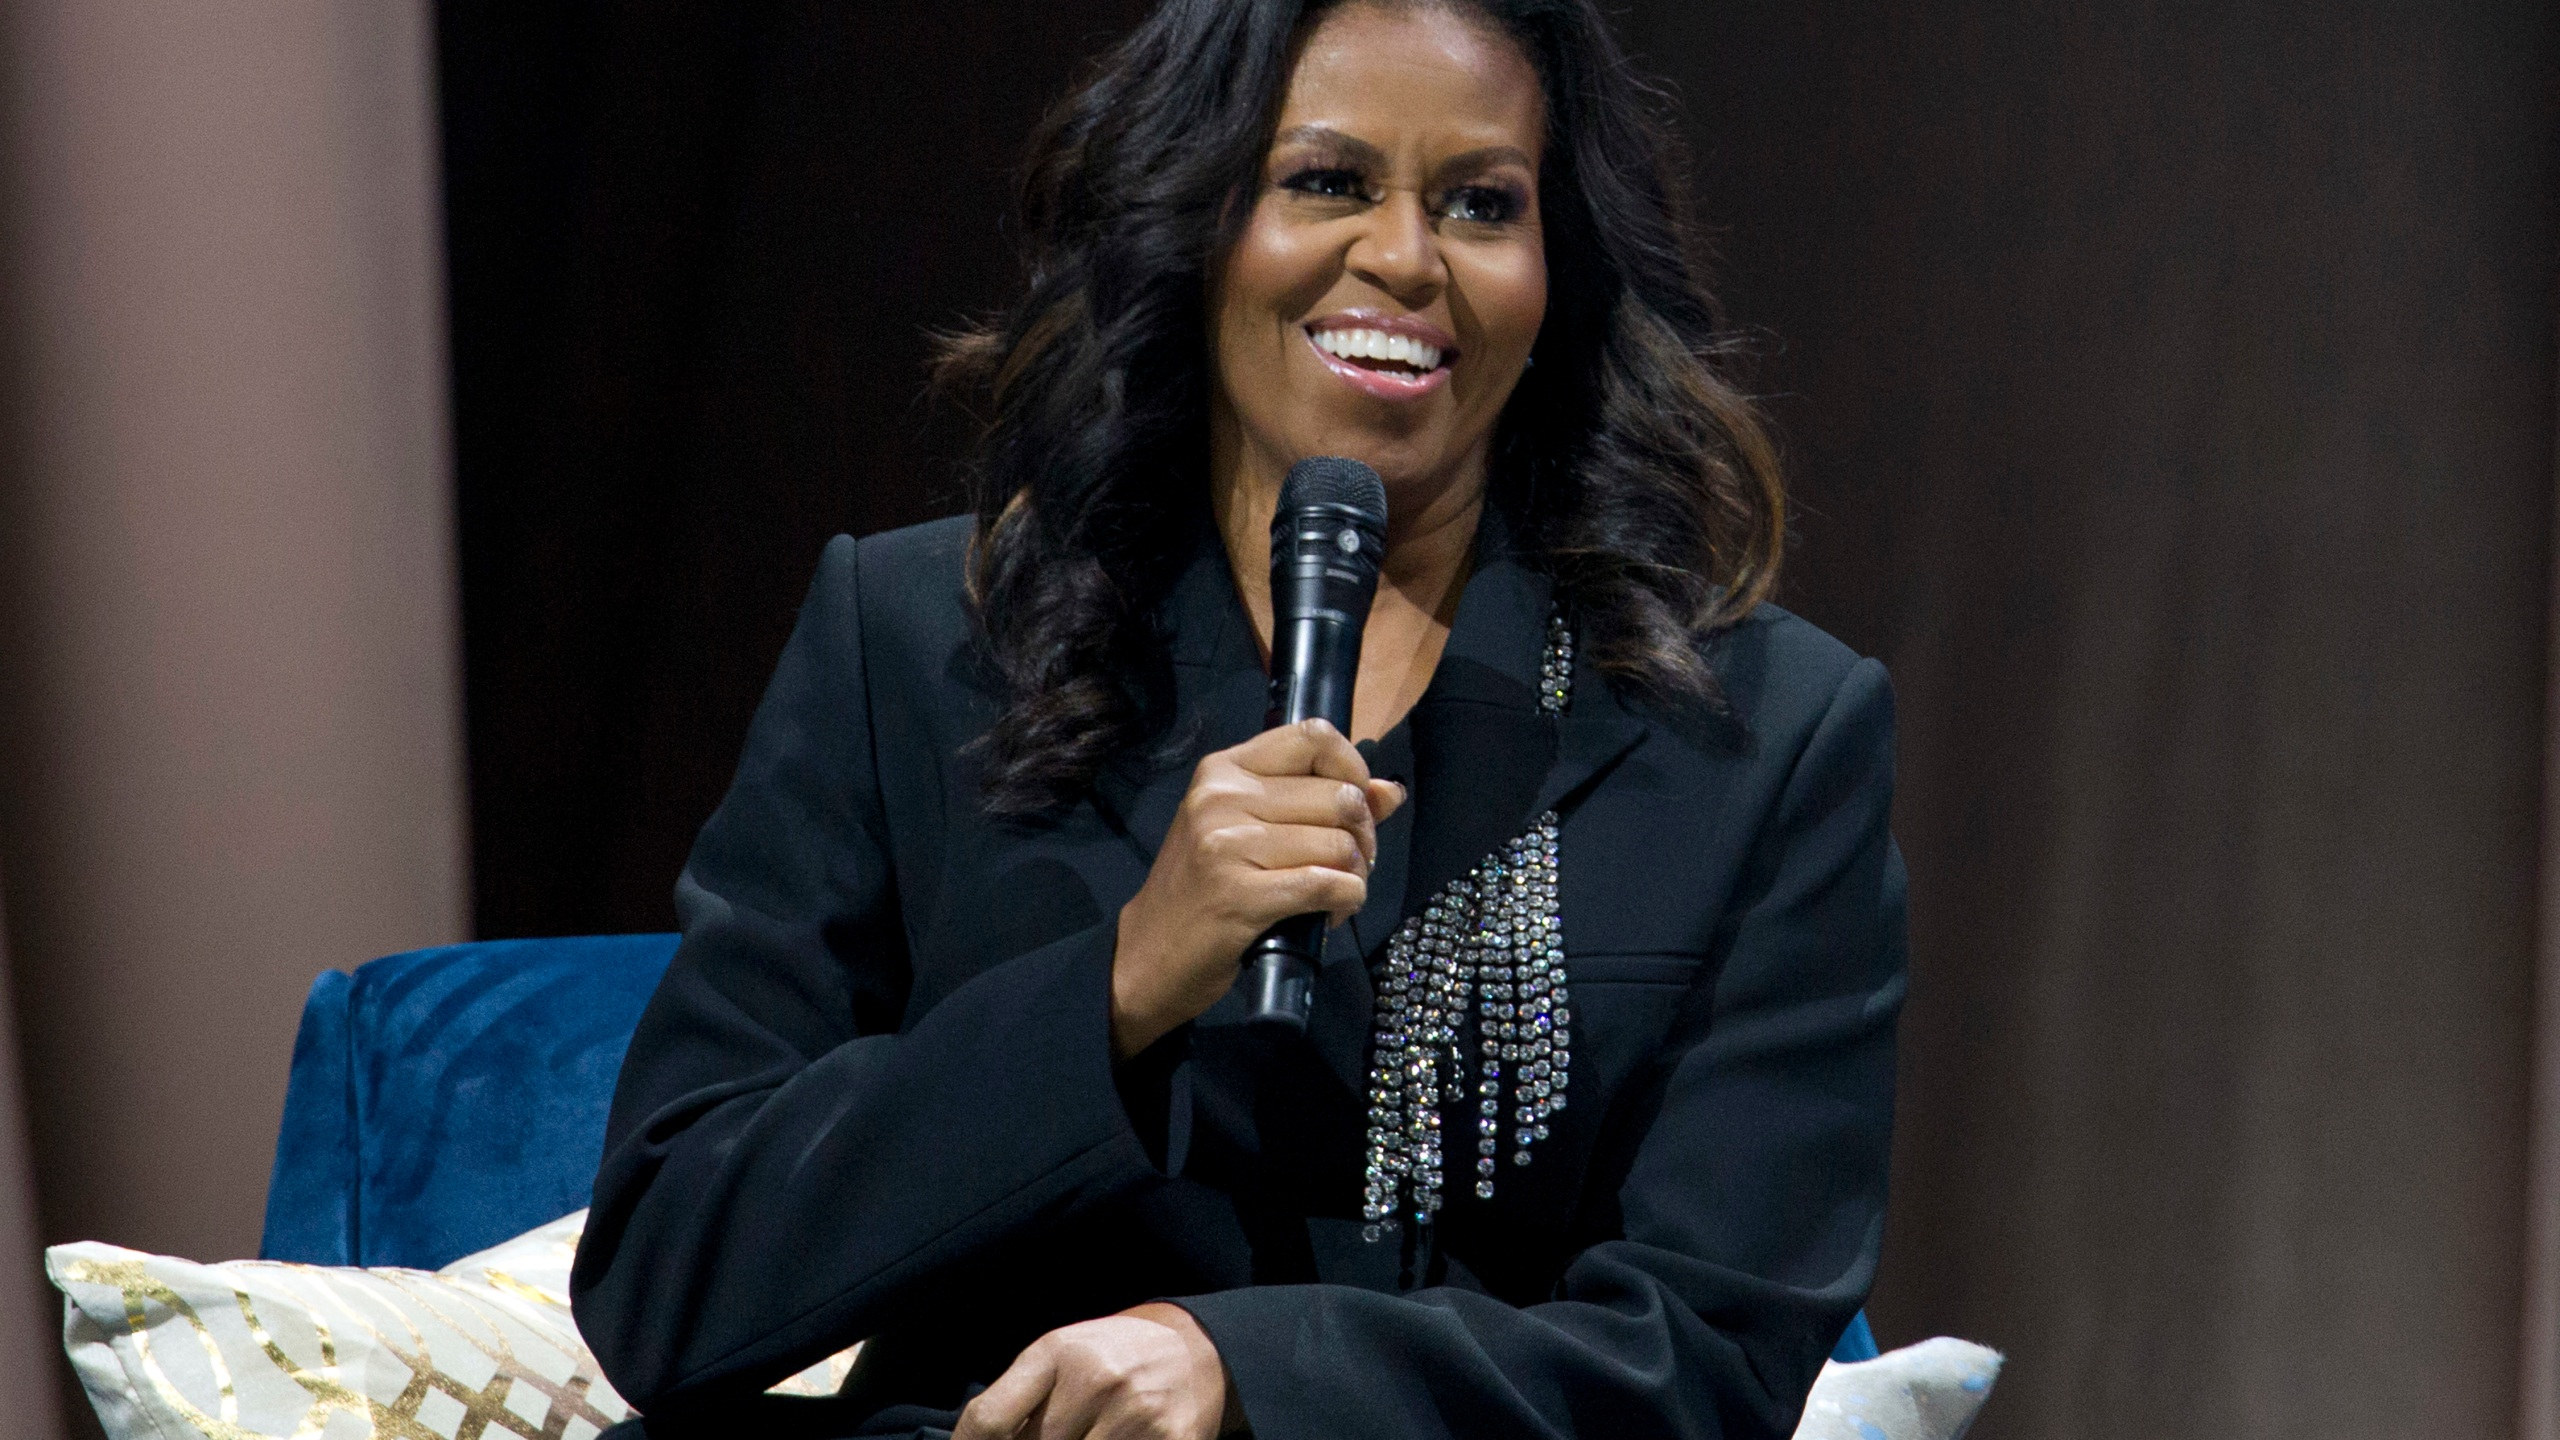 APTOPIX_Michelle_Obama_Book_Tour_55736-159532.jpg75829238